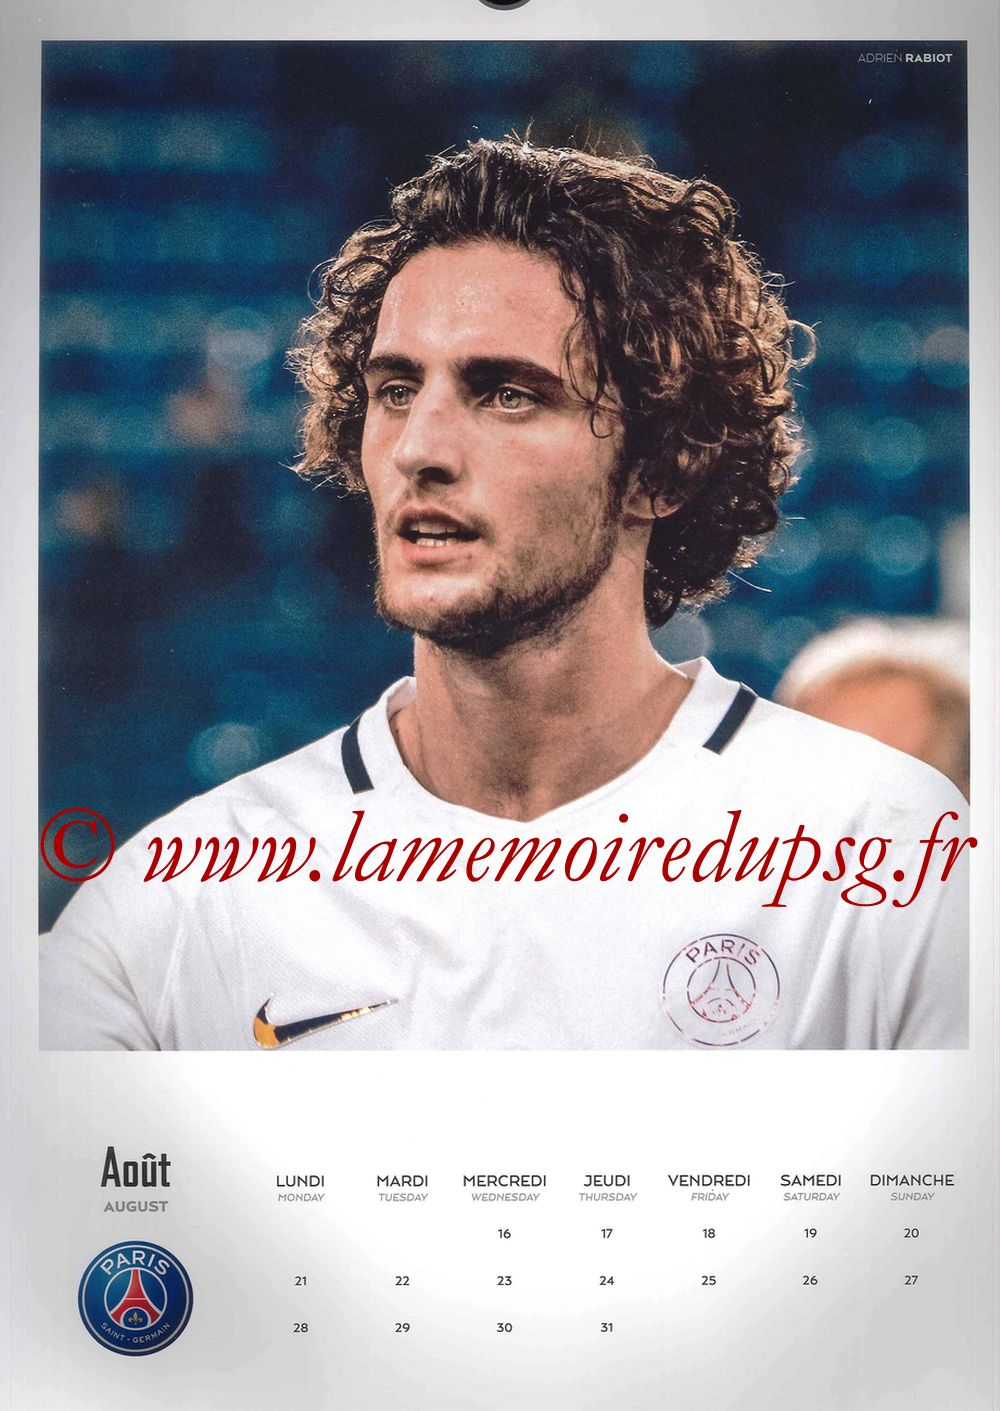 Calendrier PSG 2017 - Page 16 - Adrien RABIOT